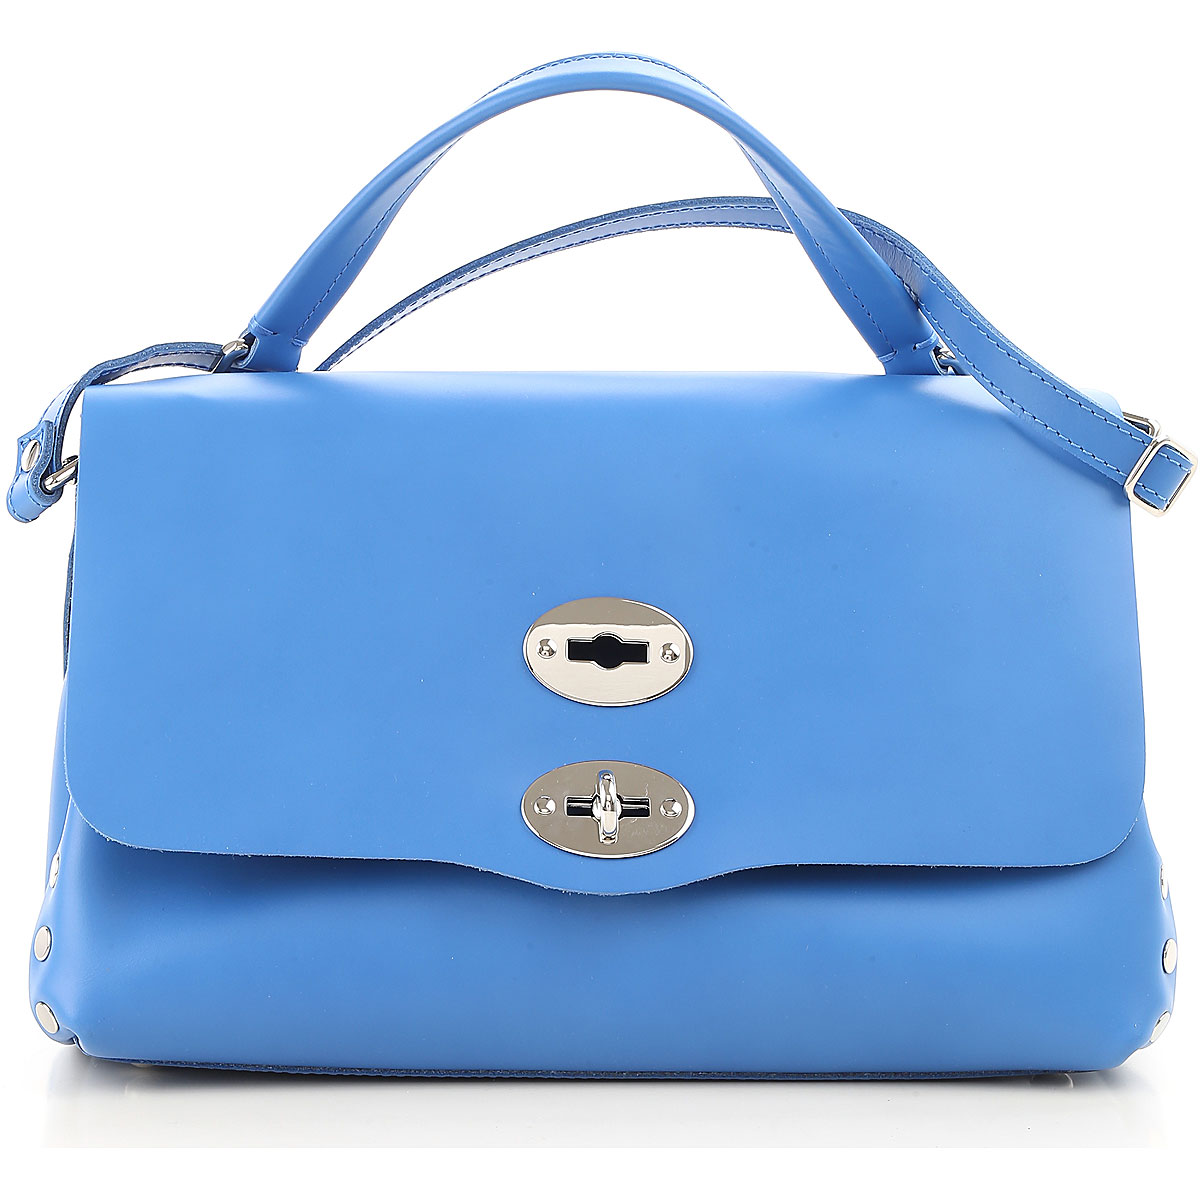 Image of Zanellato Shoulder Bag for Women On Sale, Blue Sea, Leather, 2017